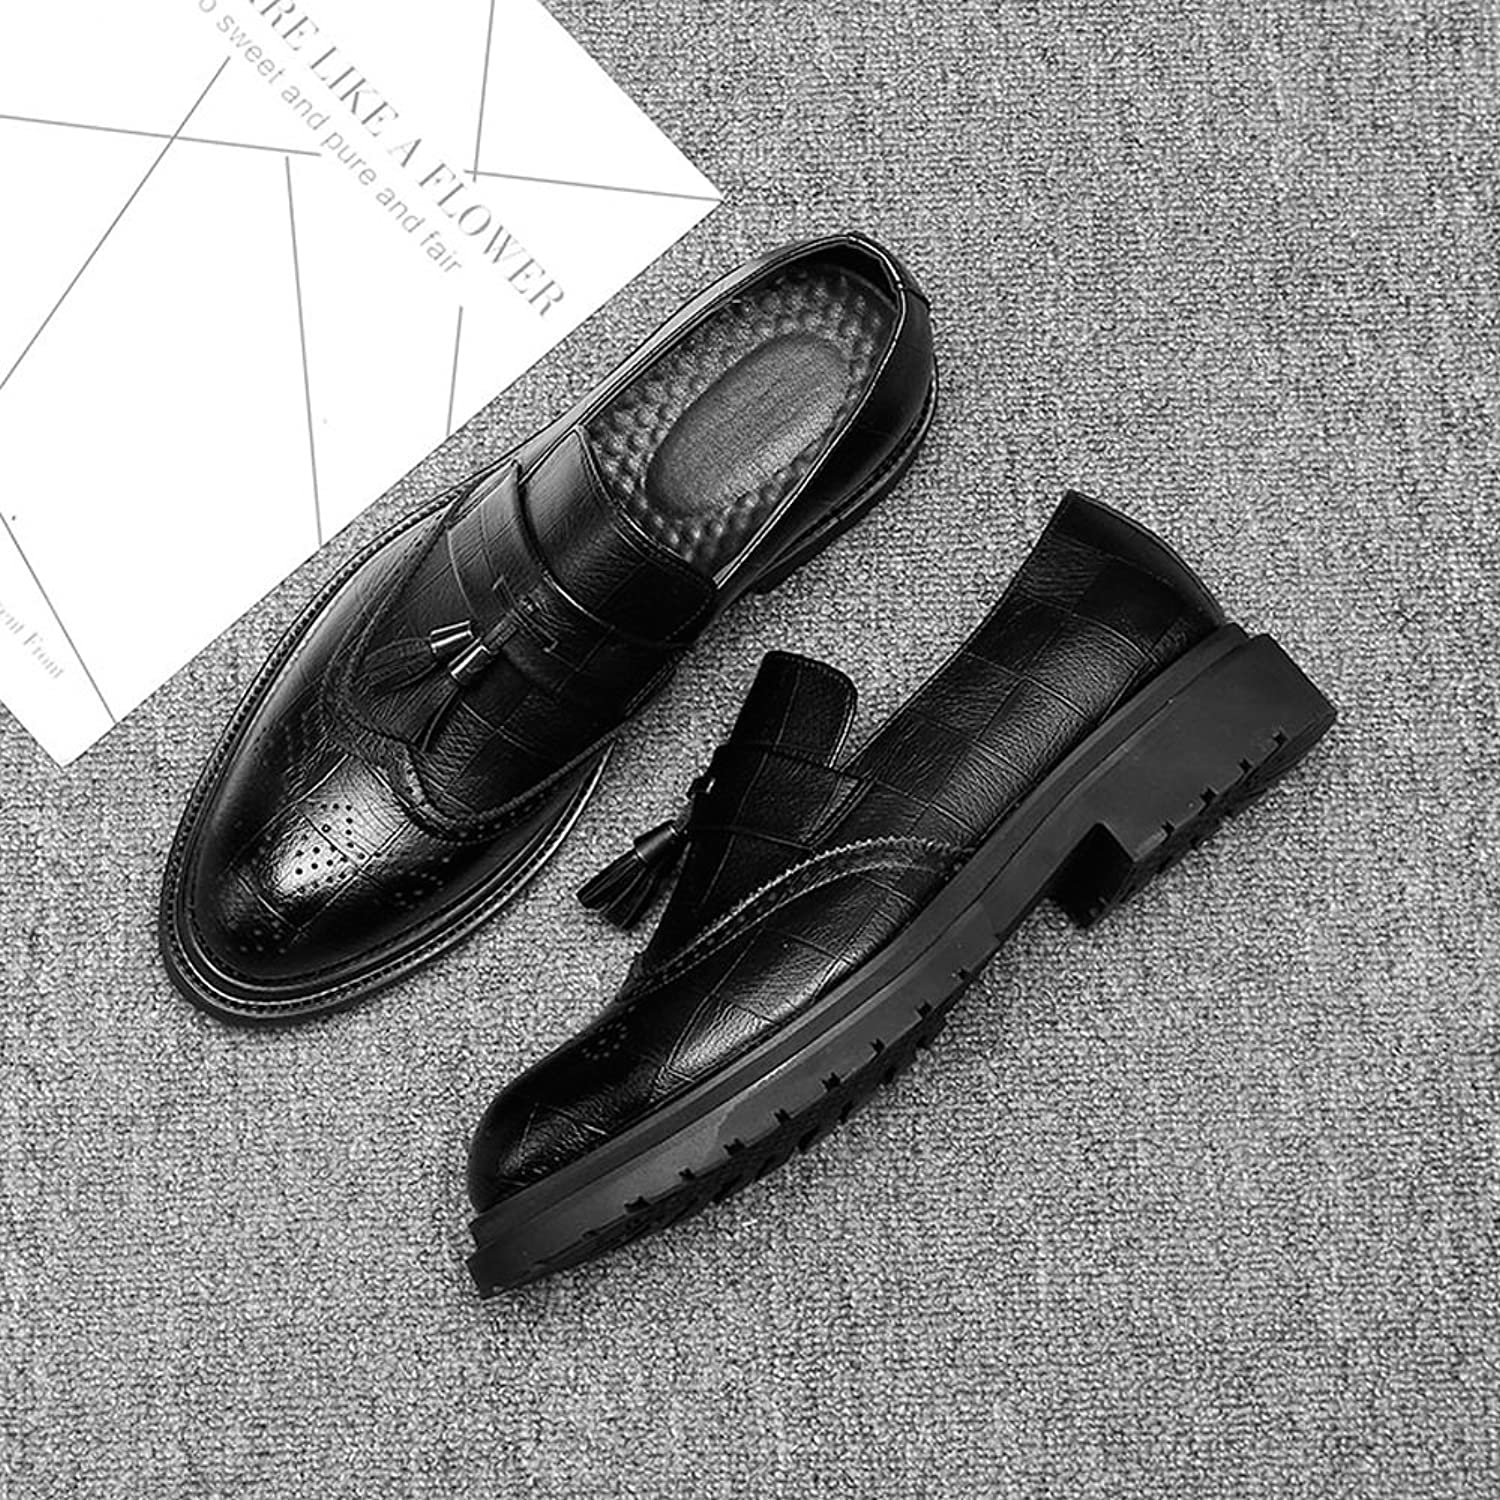 FeiNianJSh Upper Tassel Men's Business Brogue shoes PU Leather Casual shoes Pendant Slip-on Wingtip Decoration Breathable Outsole Oxfords